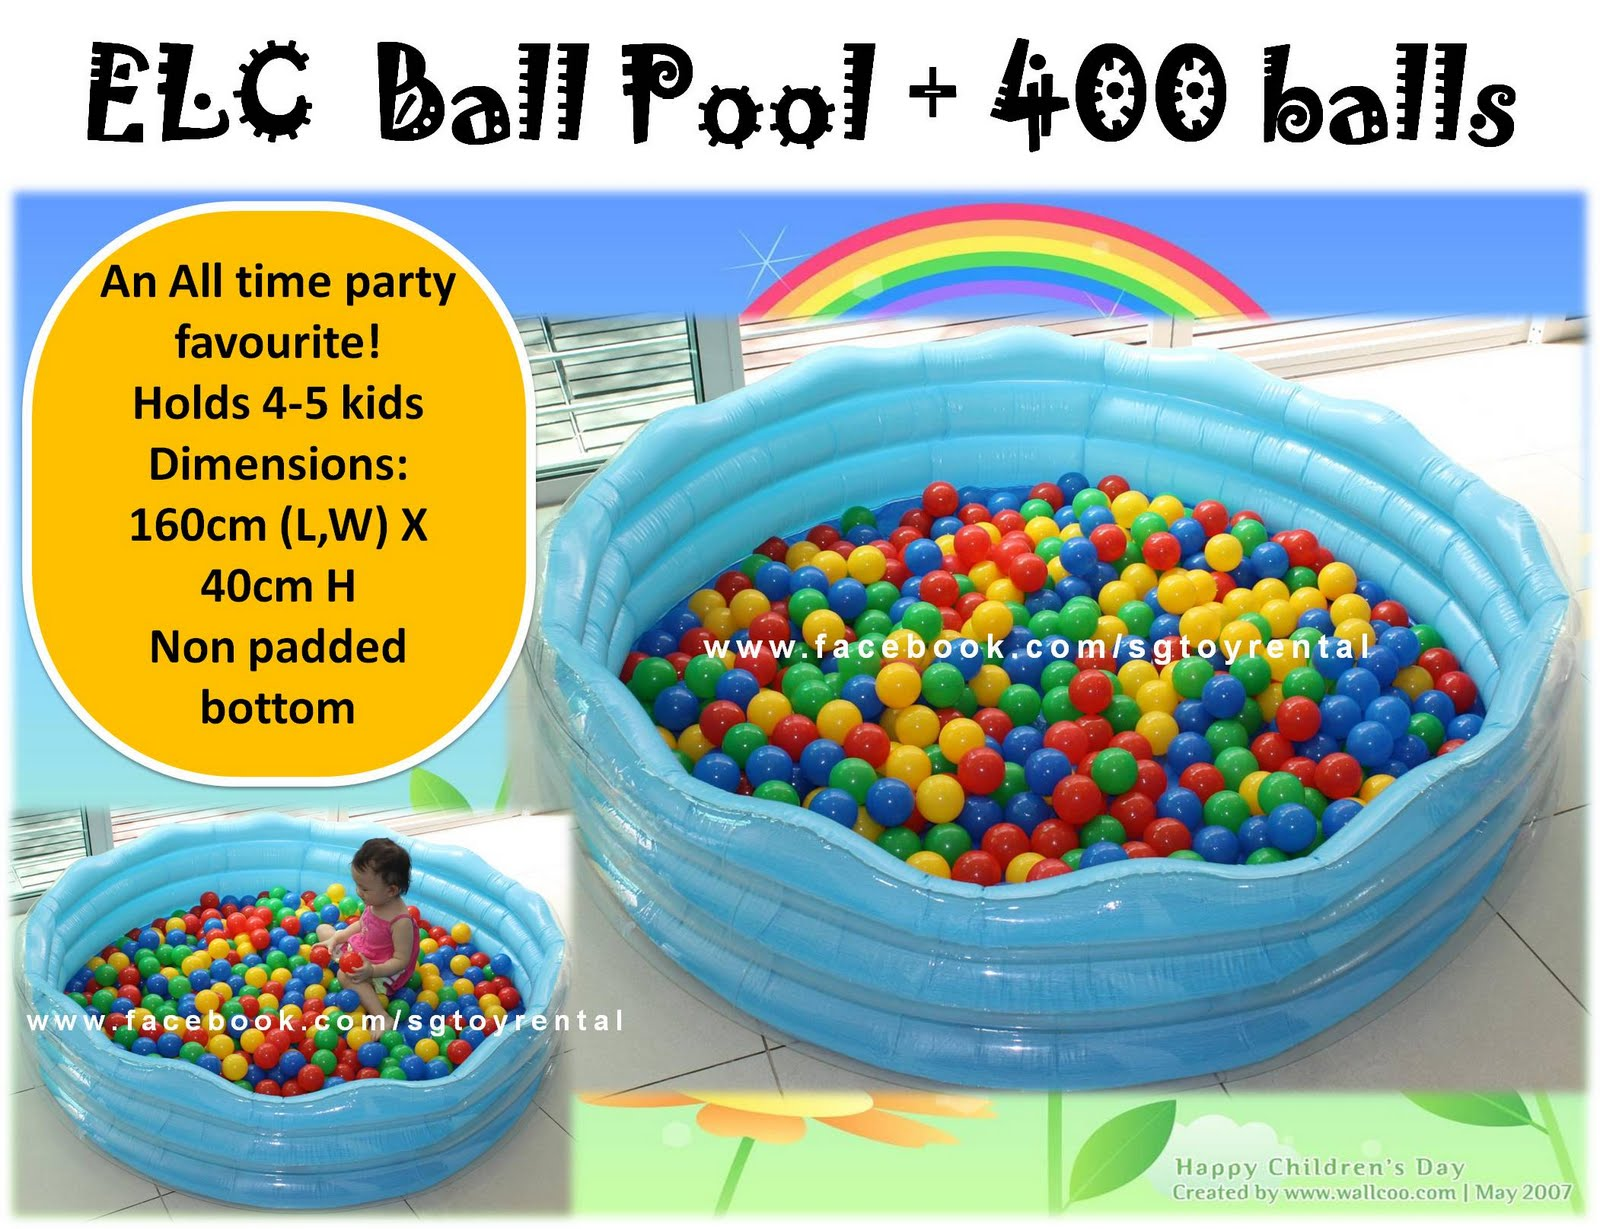 Ball in pool for Elc paddling pool